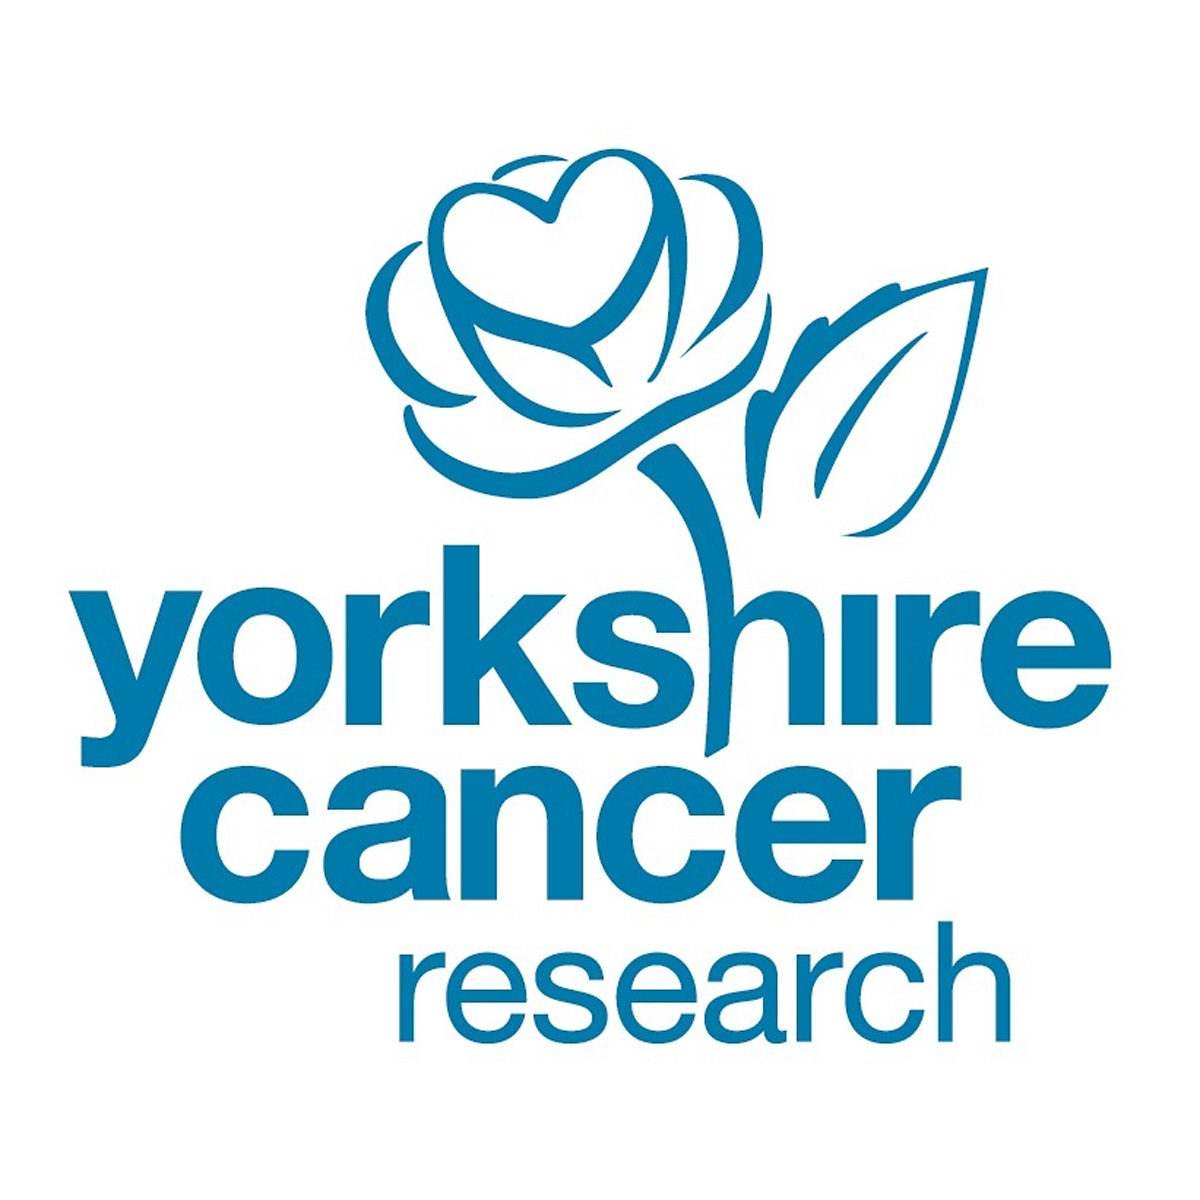 The event raised funds for Yorkshire Cancer Research